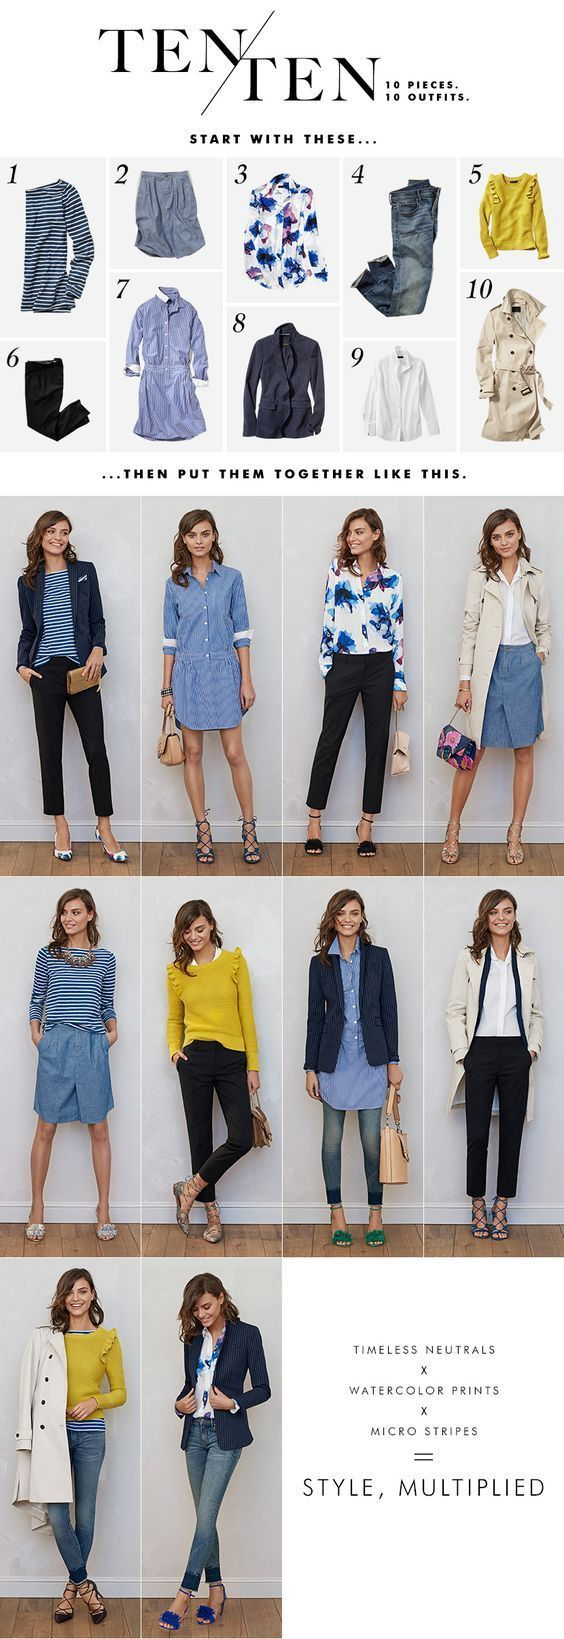 garde robe capsule my style cheat sheets pinterest packing light wardrobes and spring style